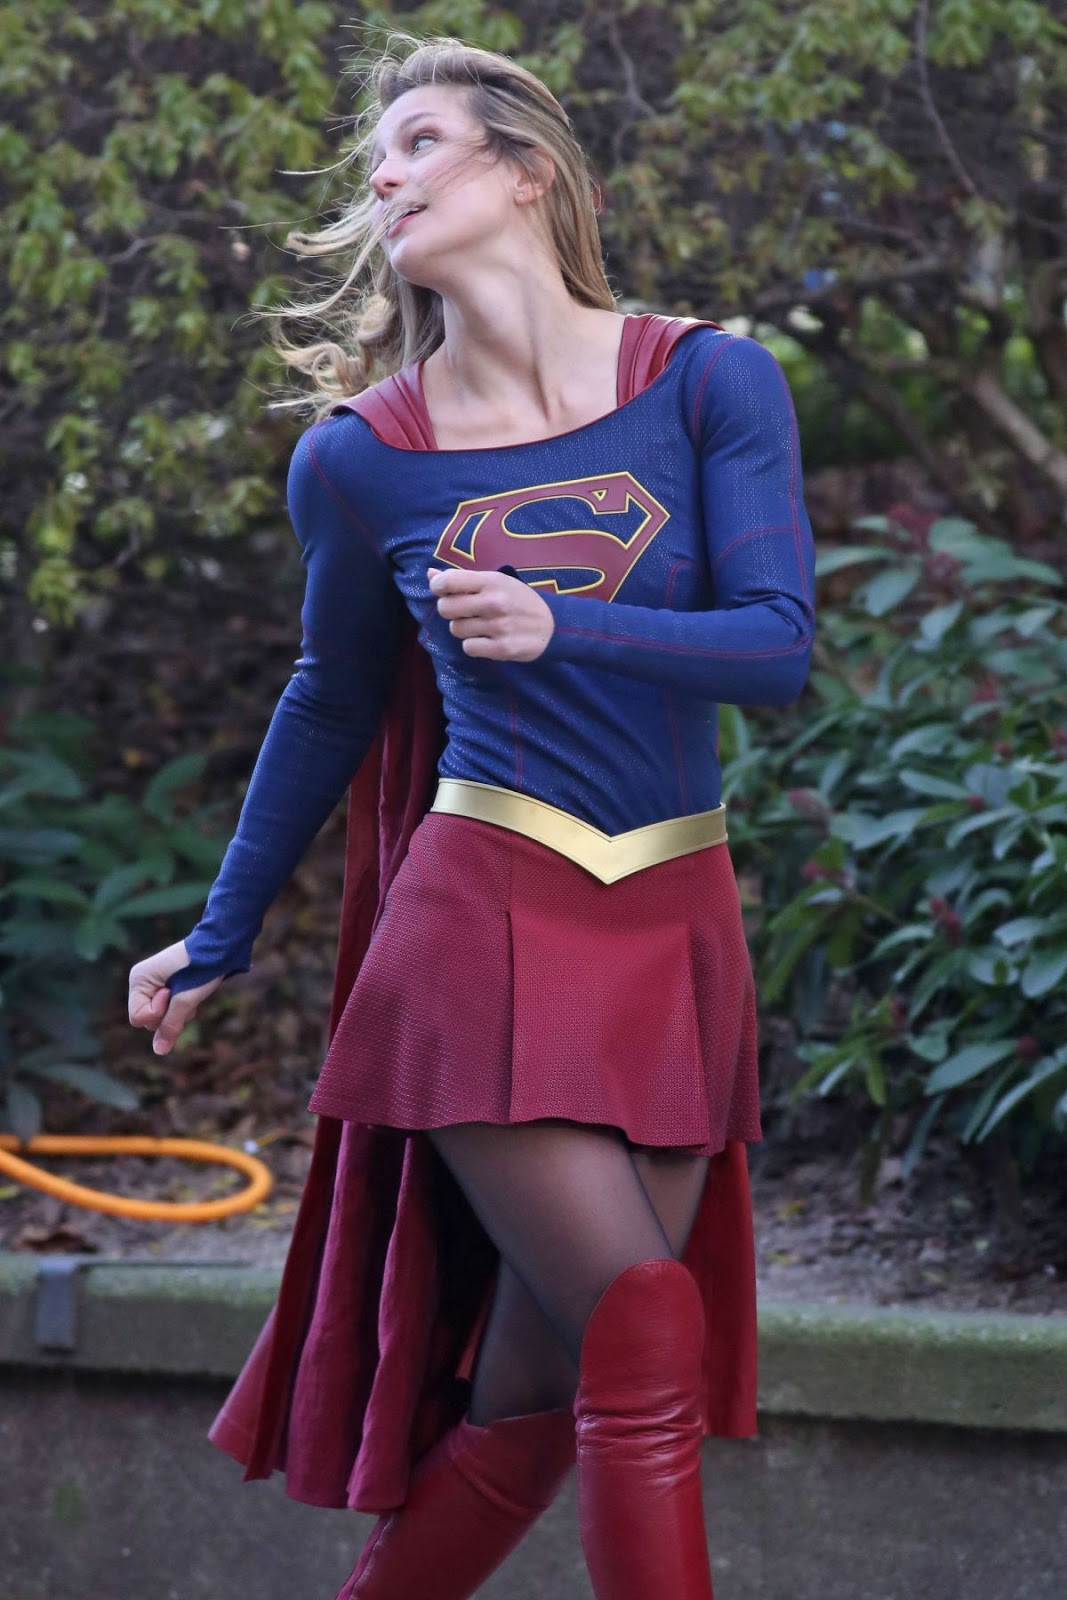 Melissa Benoist Looks Hot in Supergirl Outfit